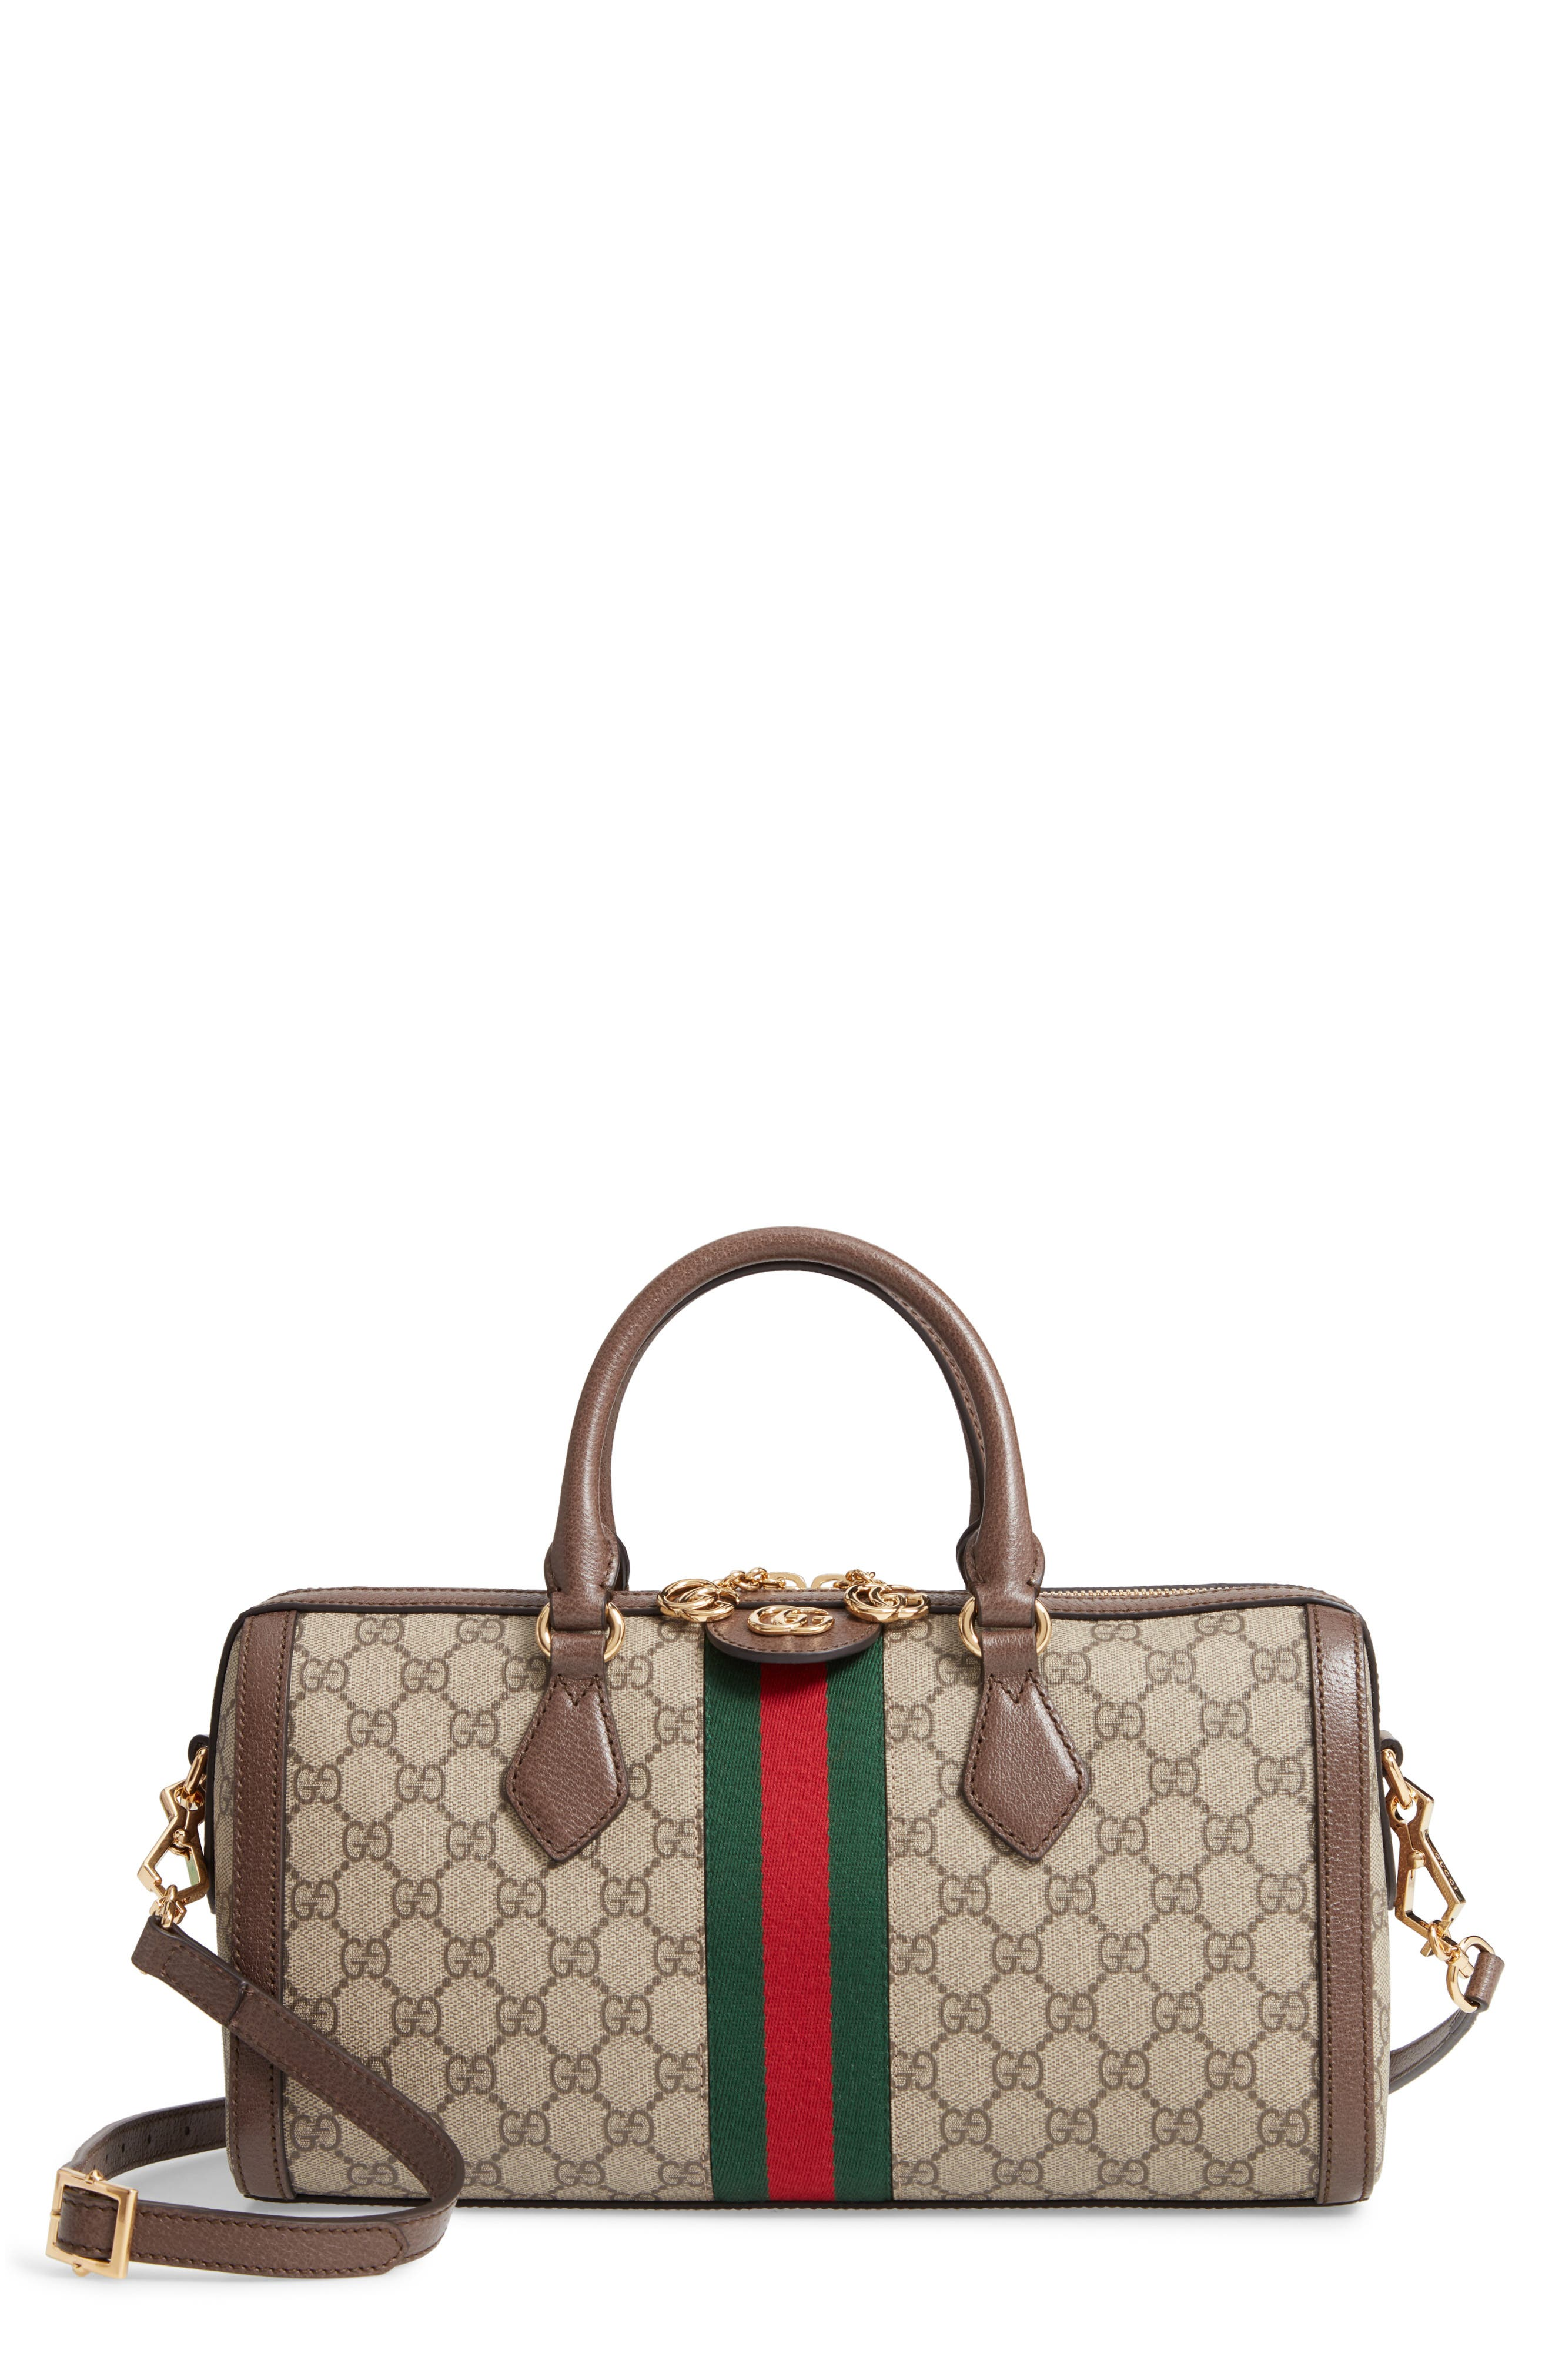 GUCCI Ophidia GG Supreme Canvas Top Handle Bag, Main, color, BEIGE EBONY/ ACERO/ VERT RED